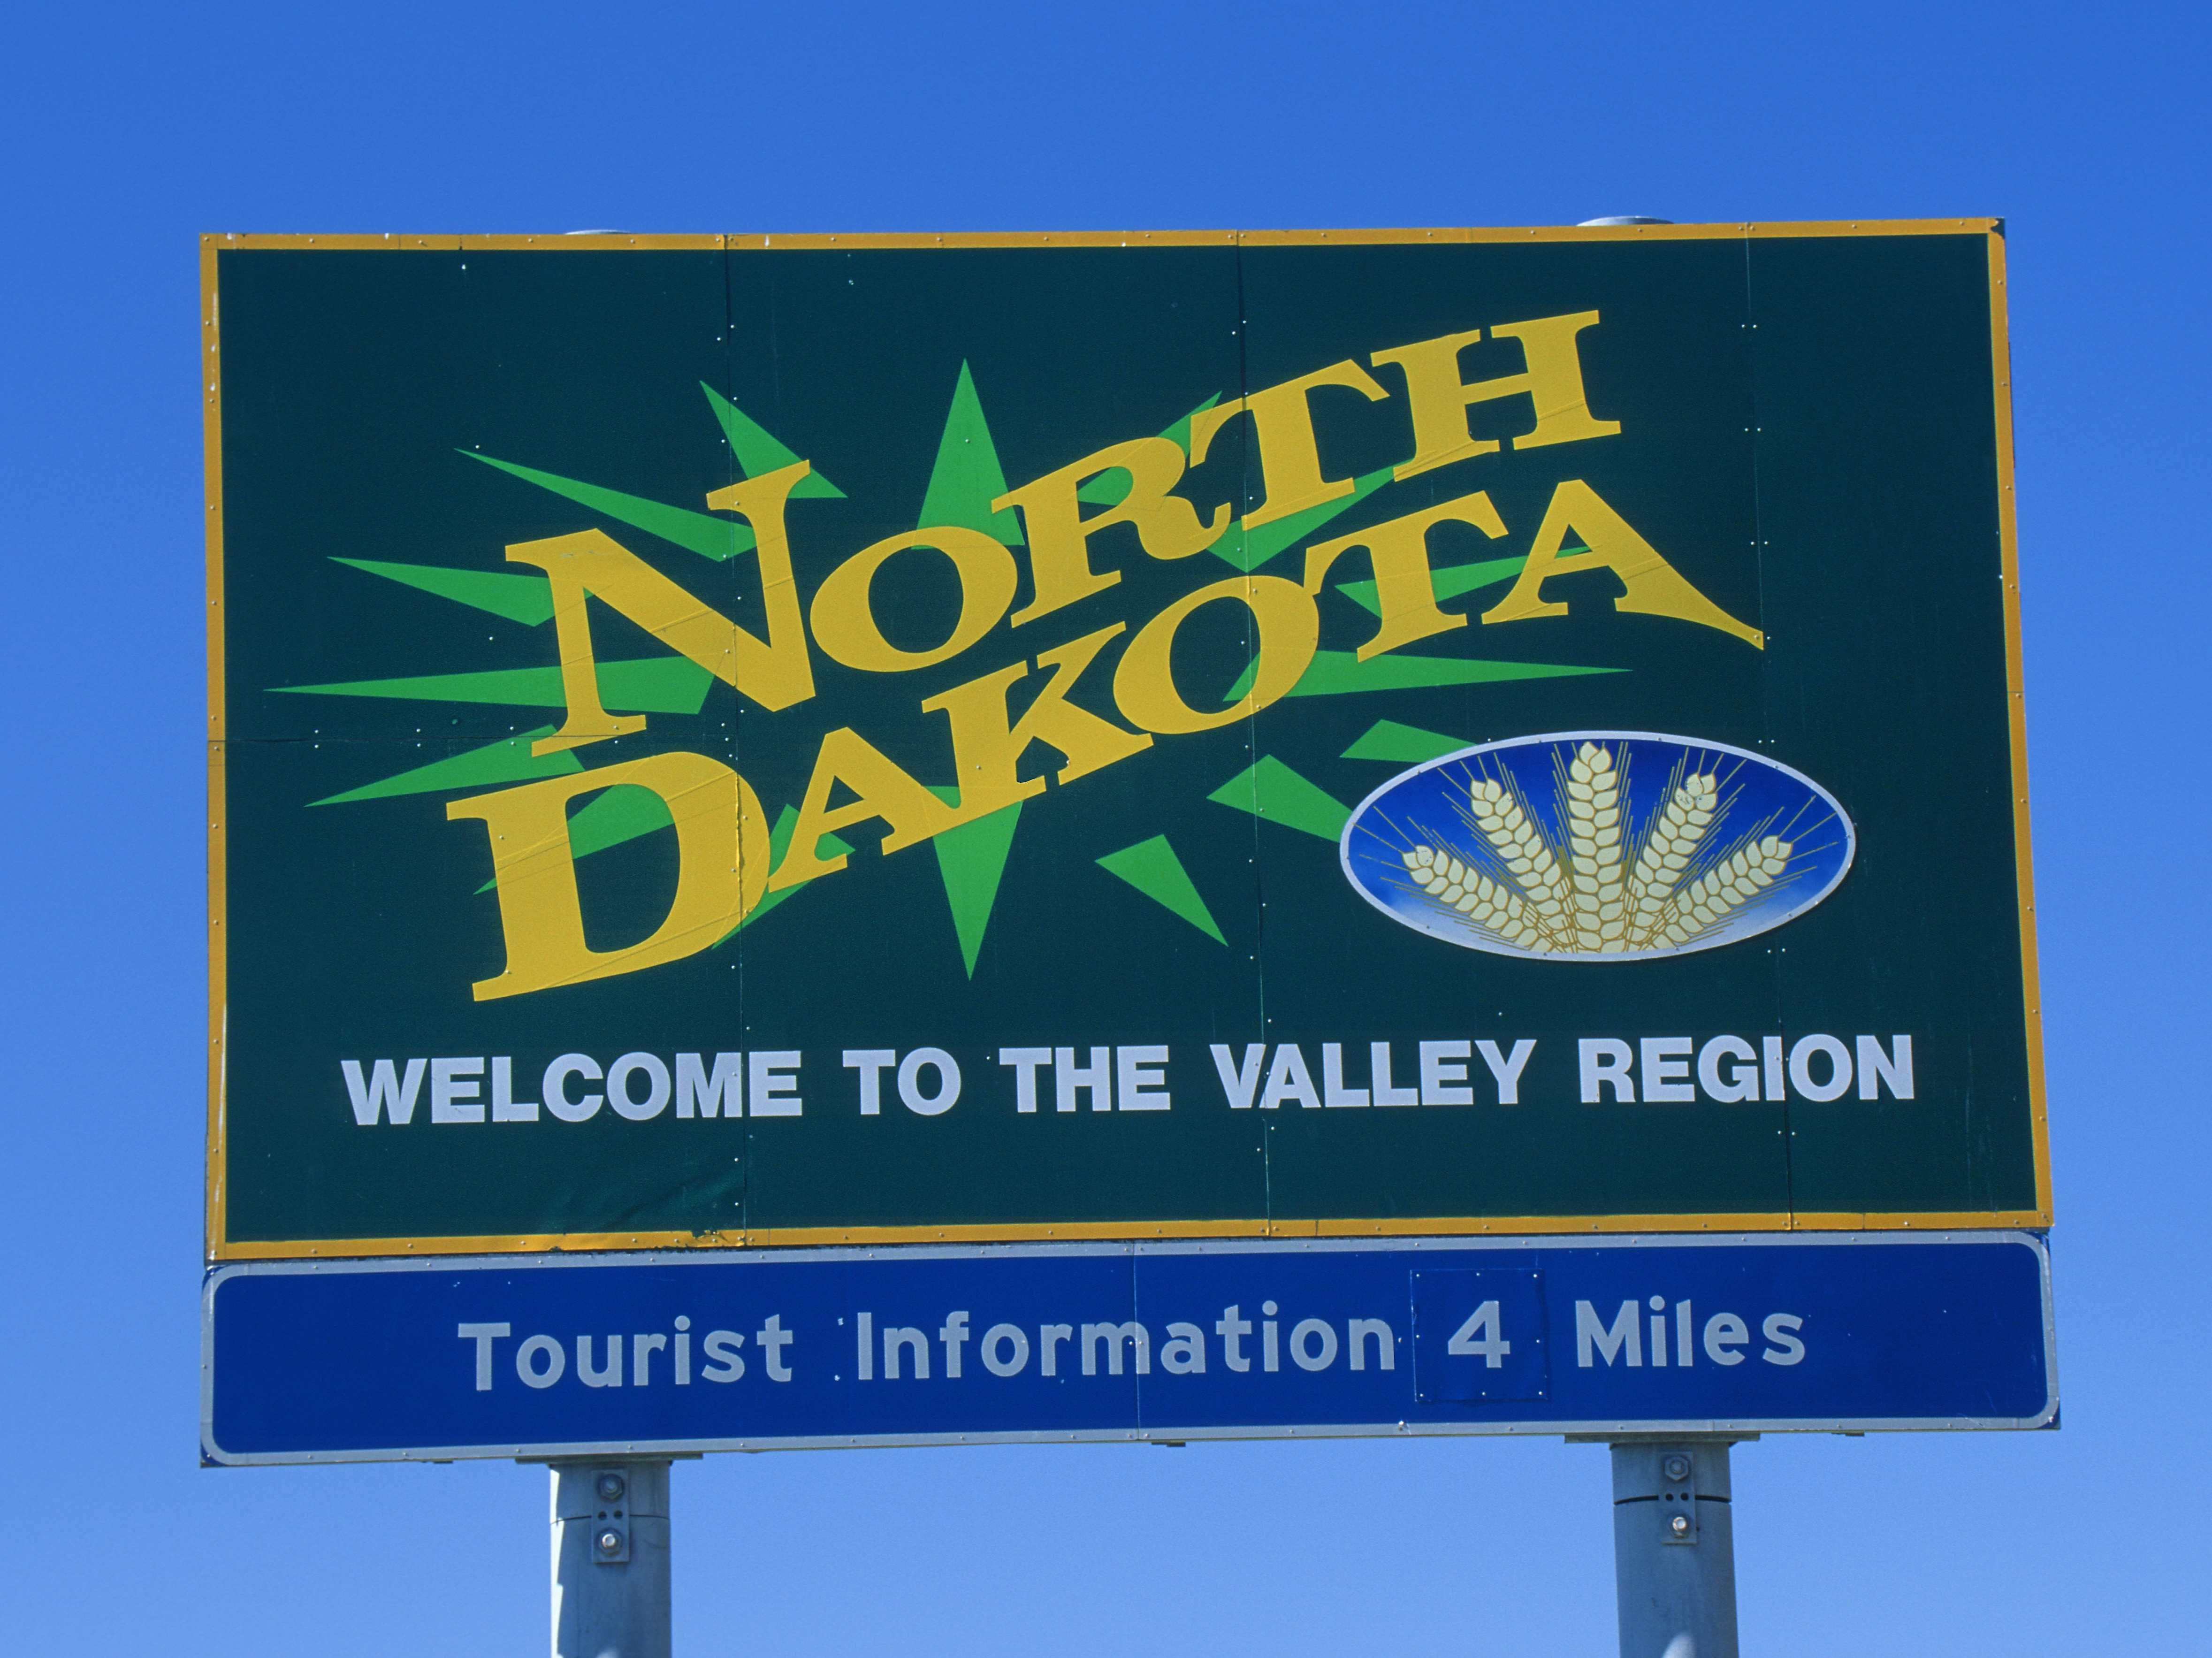 Green sign with text: North Dakota: Welcome to the Valley Region / Tourist Information: 4 Miles